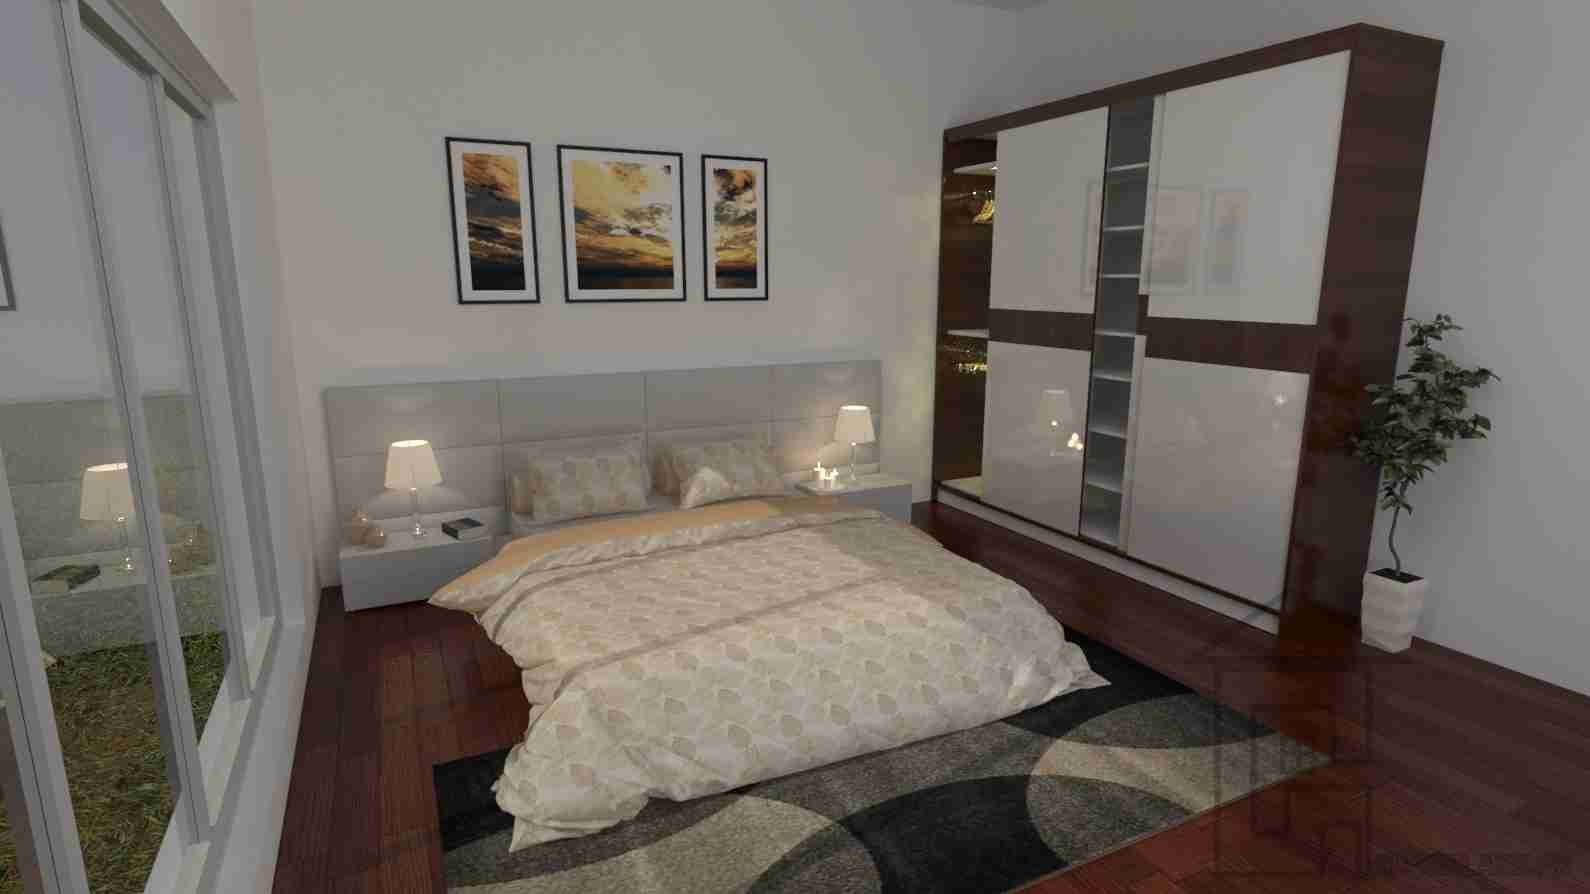 Bedroom Design 2018 As This Bedroom Has Been Designed For A House In Karachi Pakistan The Modern Bedroom Interior Design Your Bedroom Interior Design Bedroom